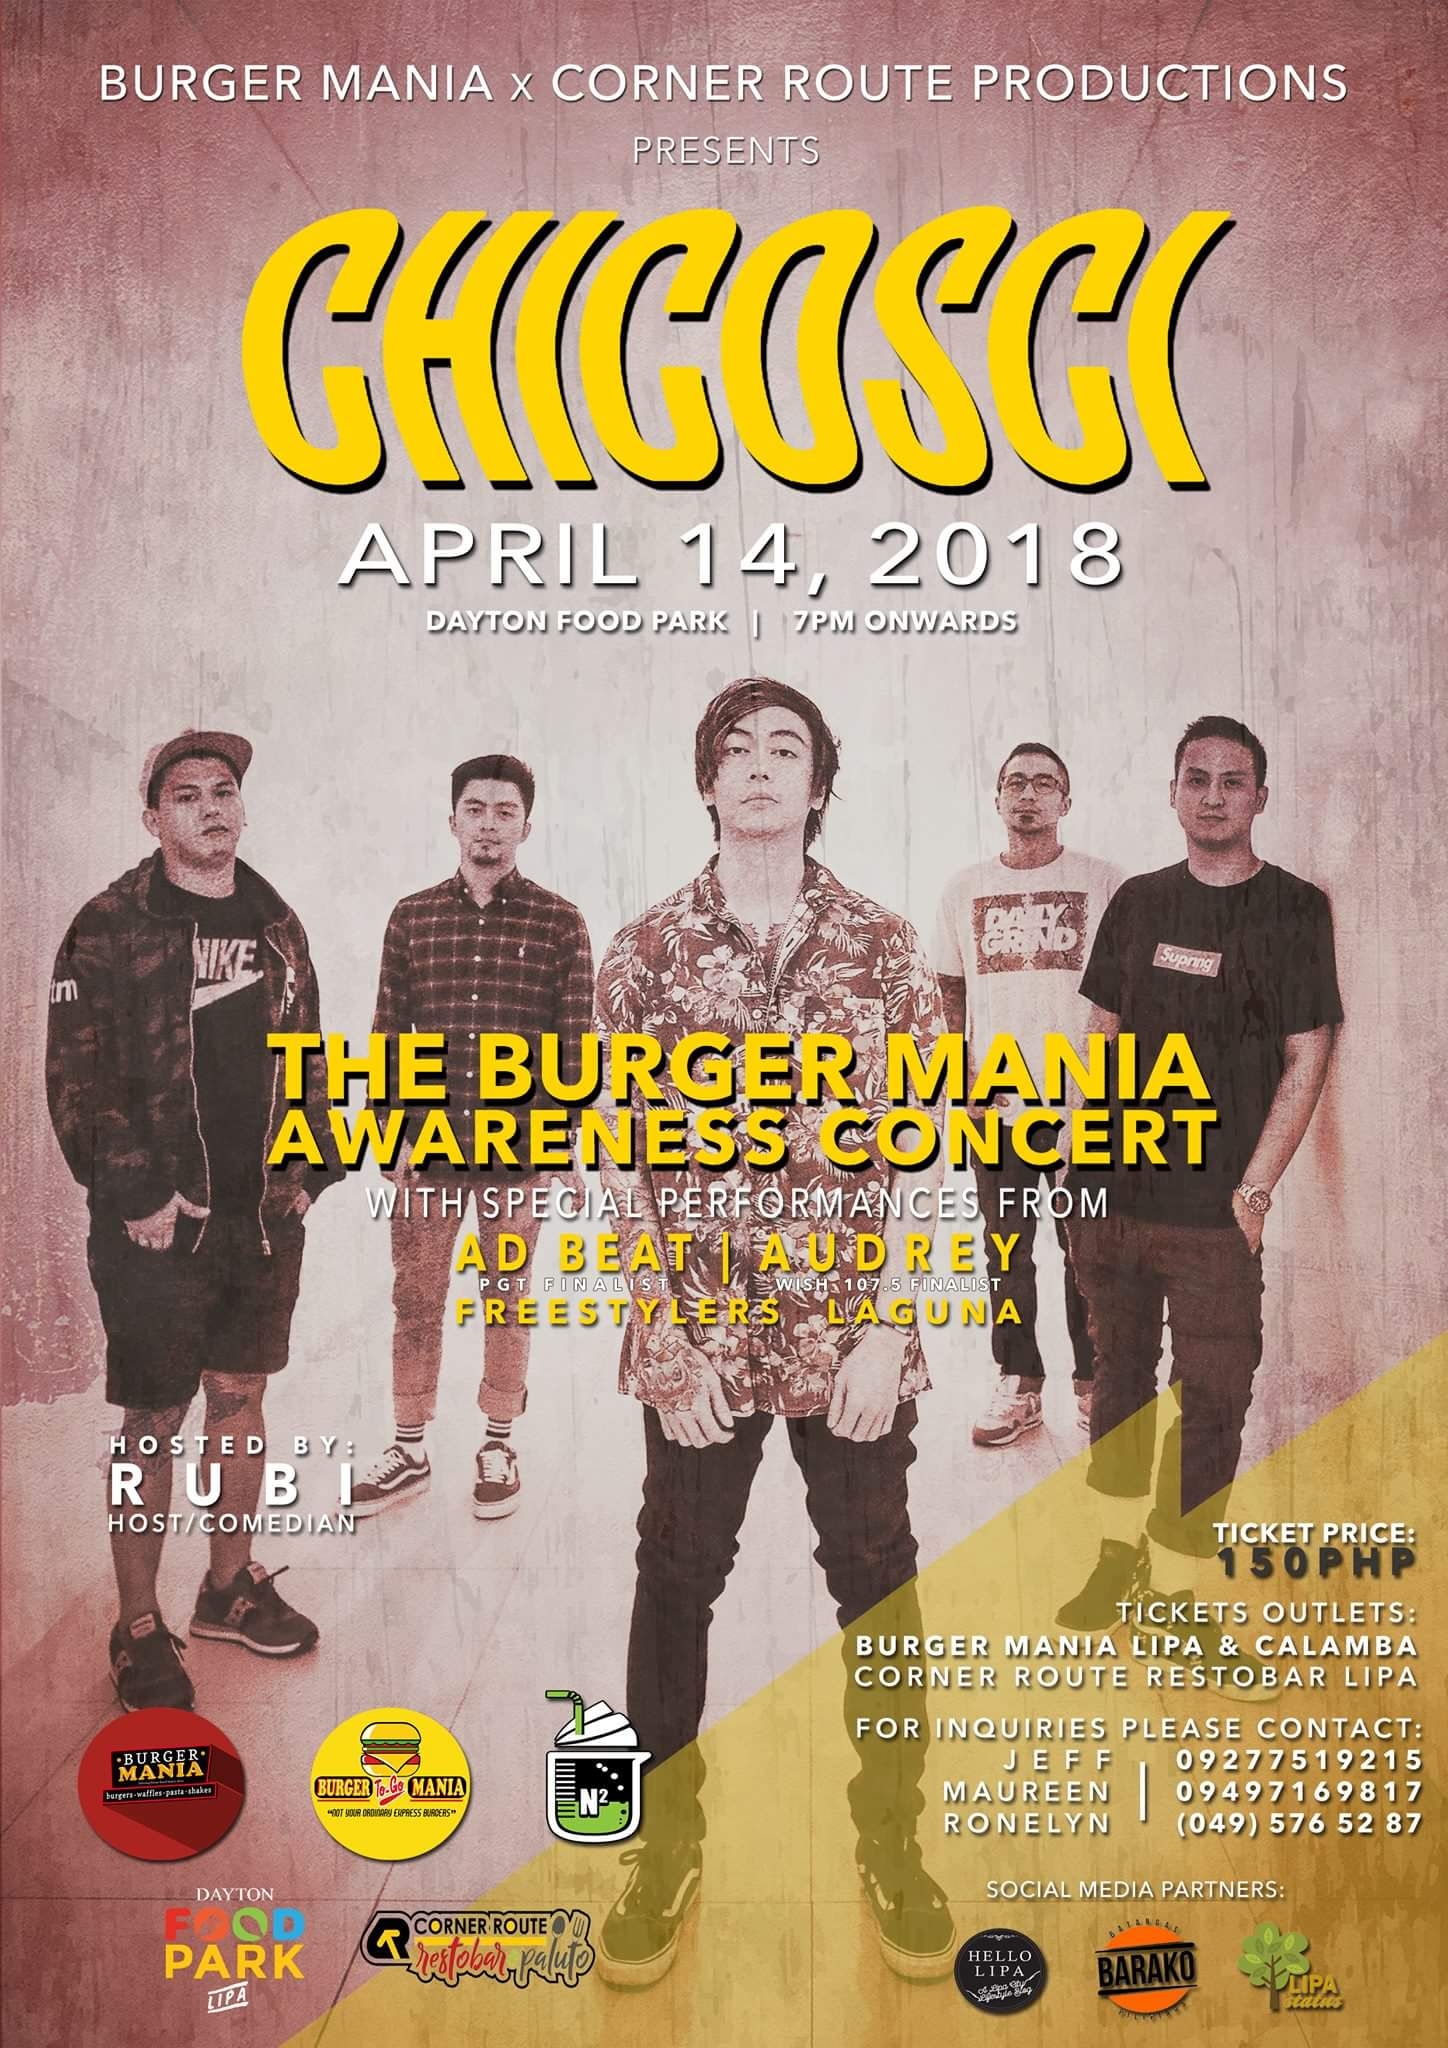 The Burger Mania Awareness Concert